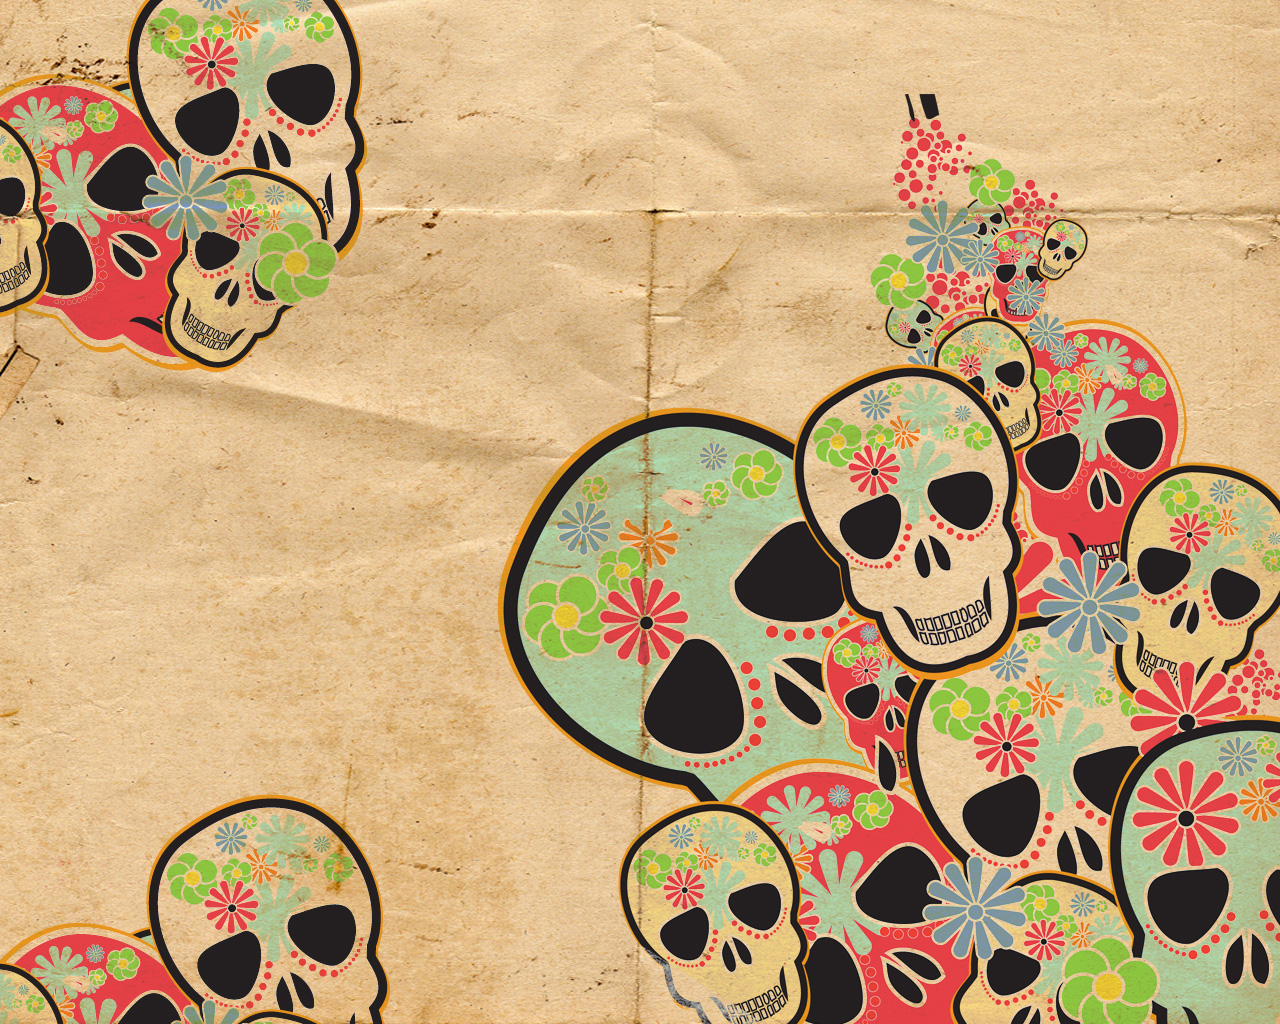 Cool Skull Backgrounds For Girls Images Pictures   Becuo 1280x1024